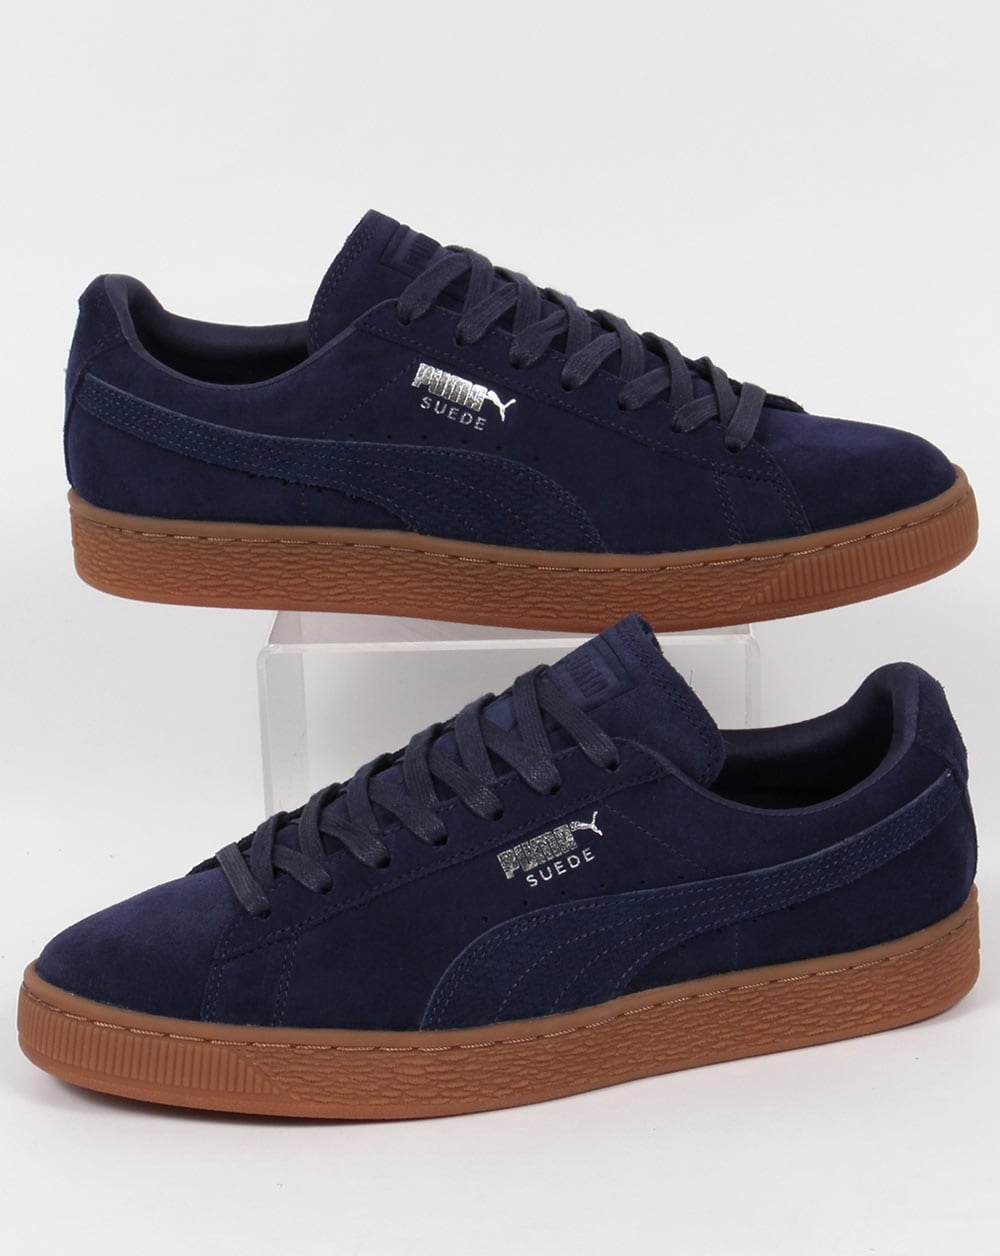 Puma Suede Citi Trainers Navy,shoes,sneakers,classic,mens